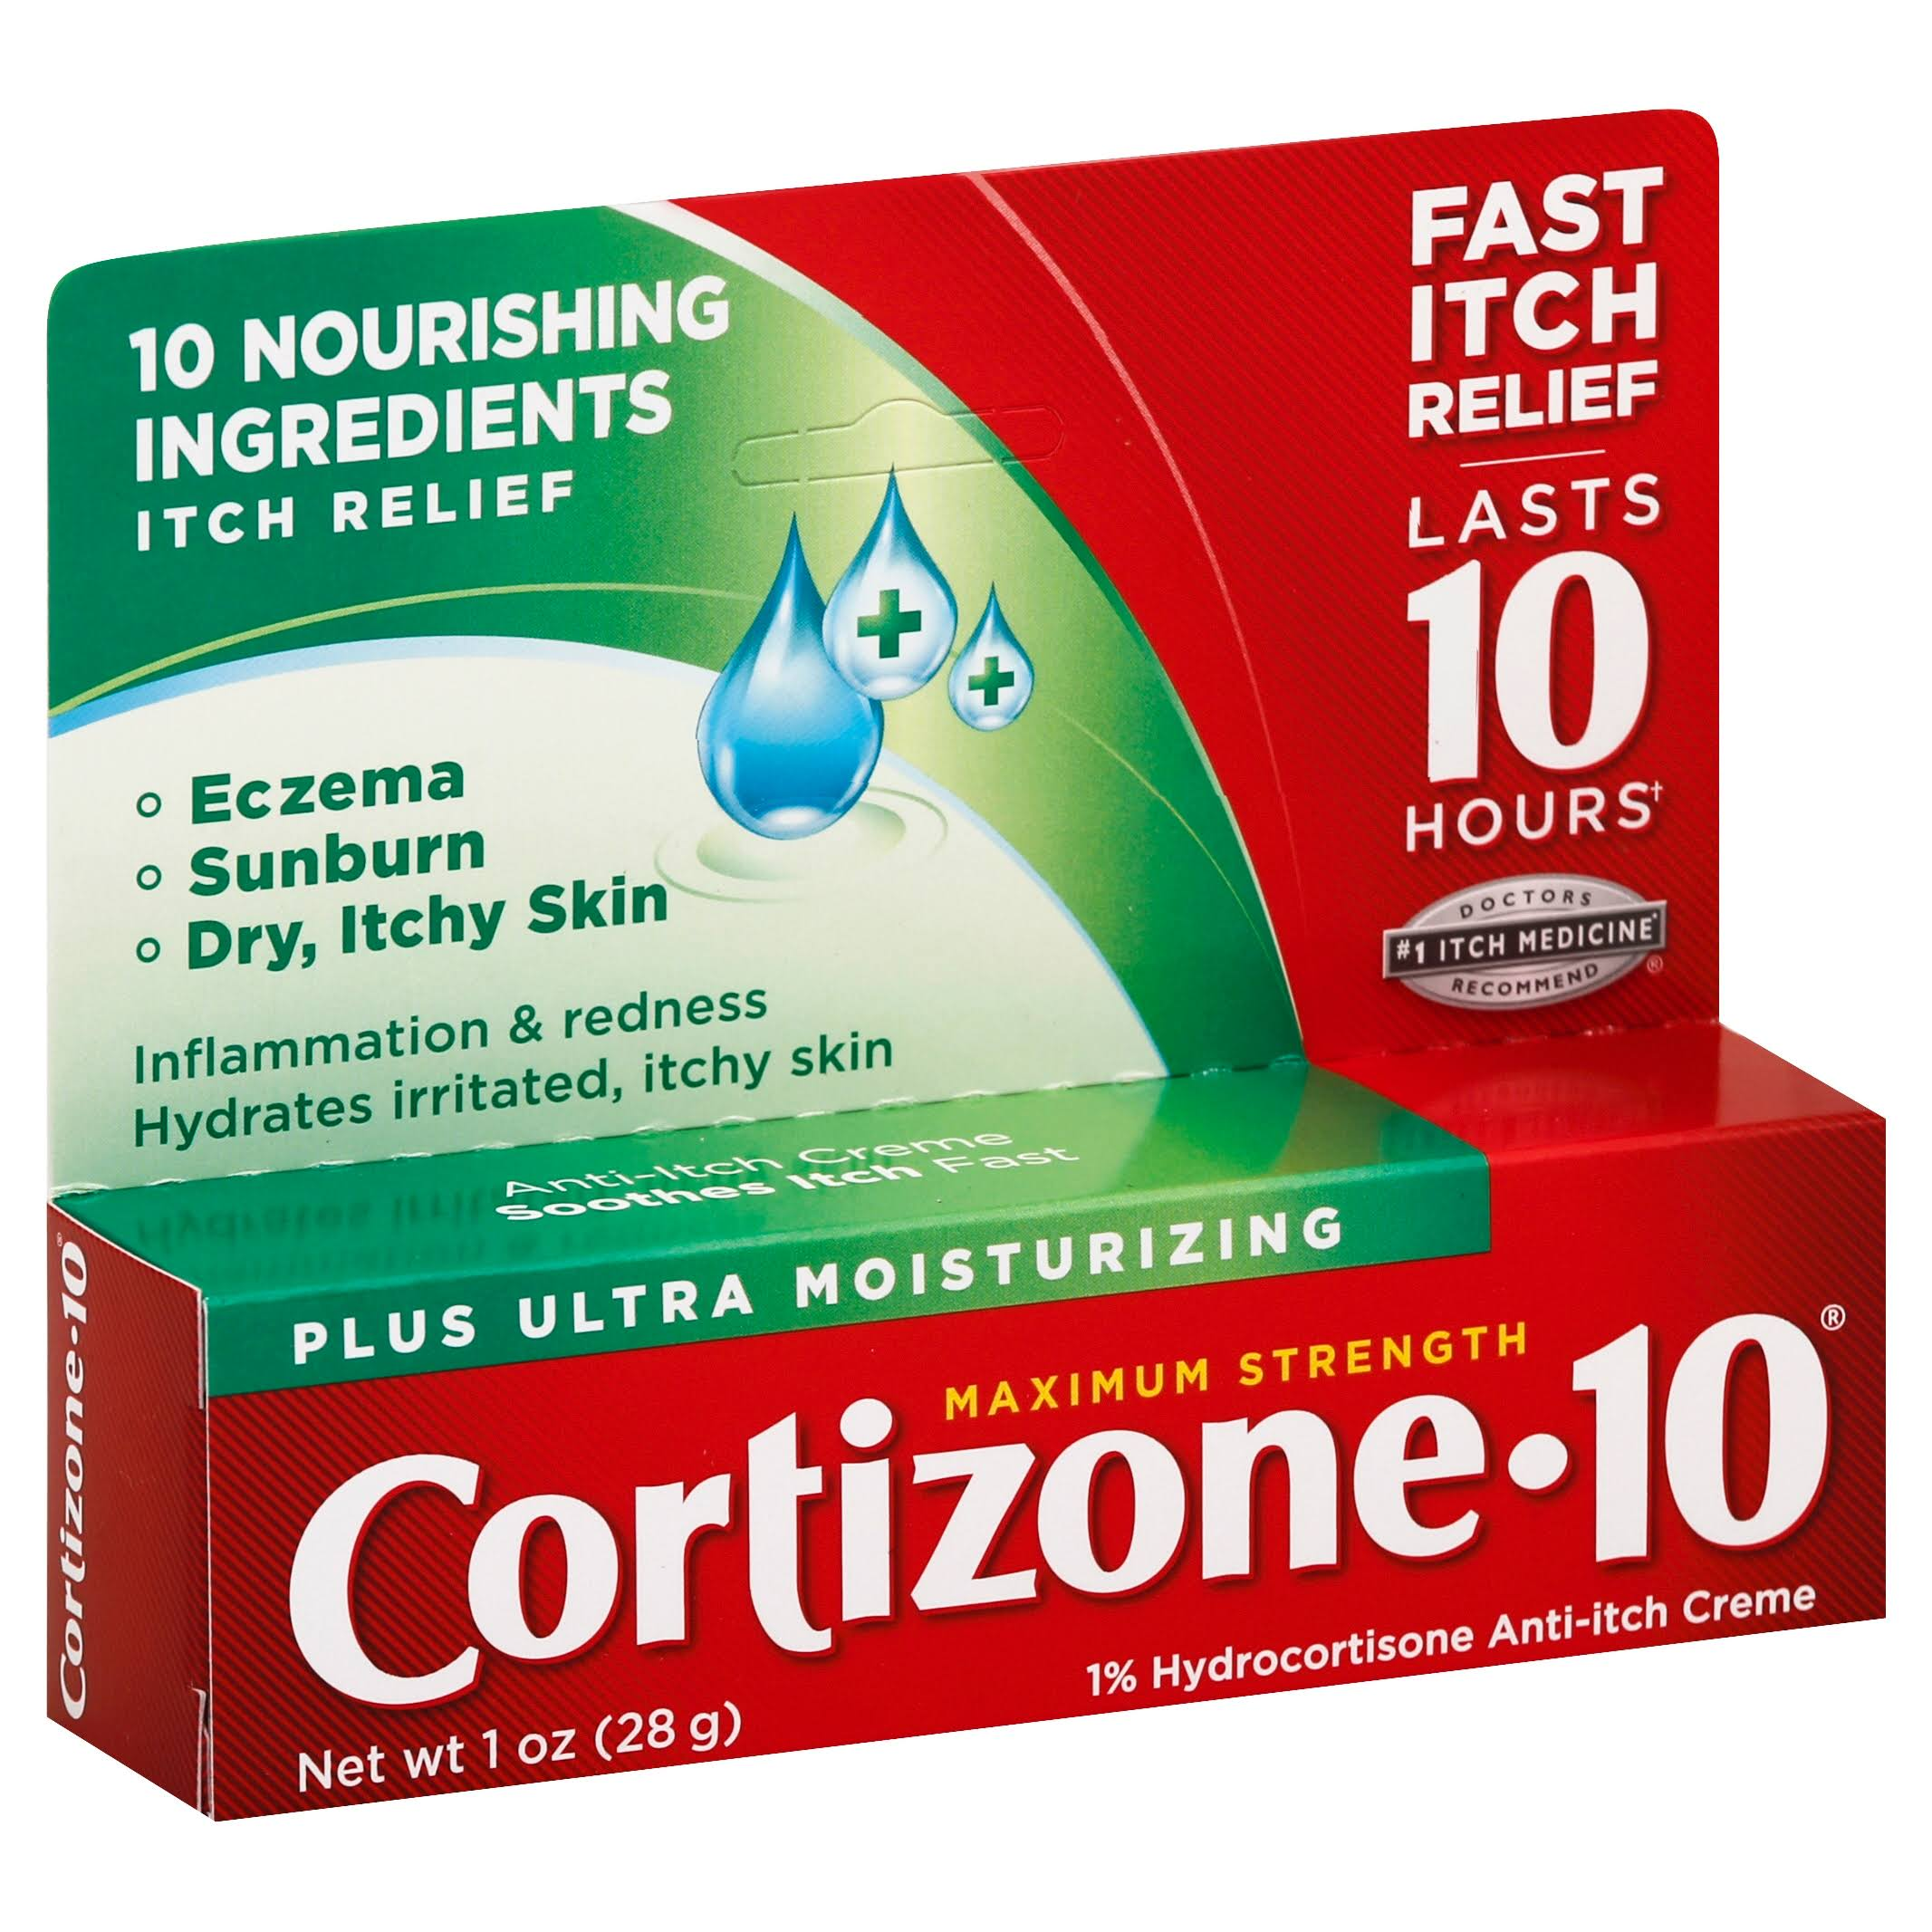 Cortizone 10 Plus Anti-Itch Cream